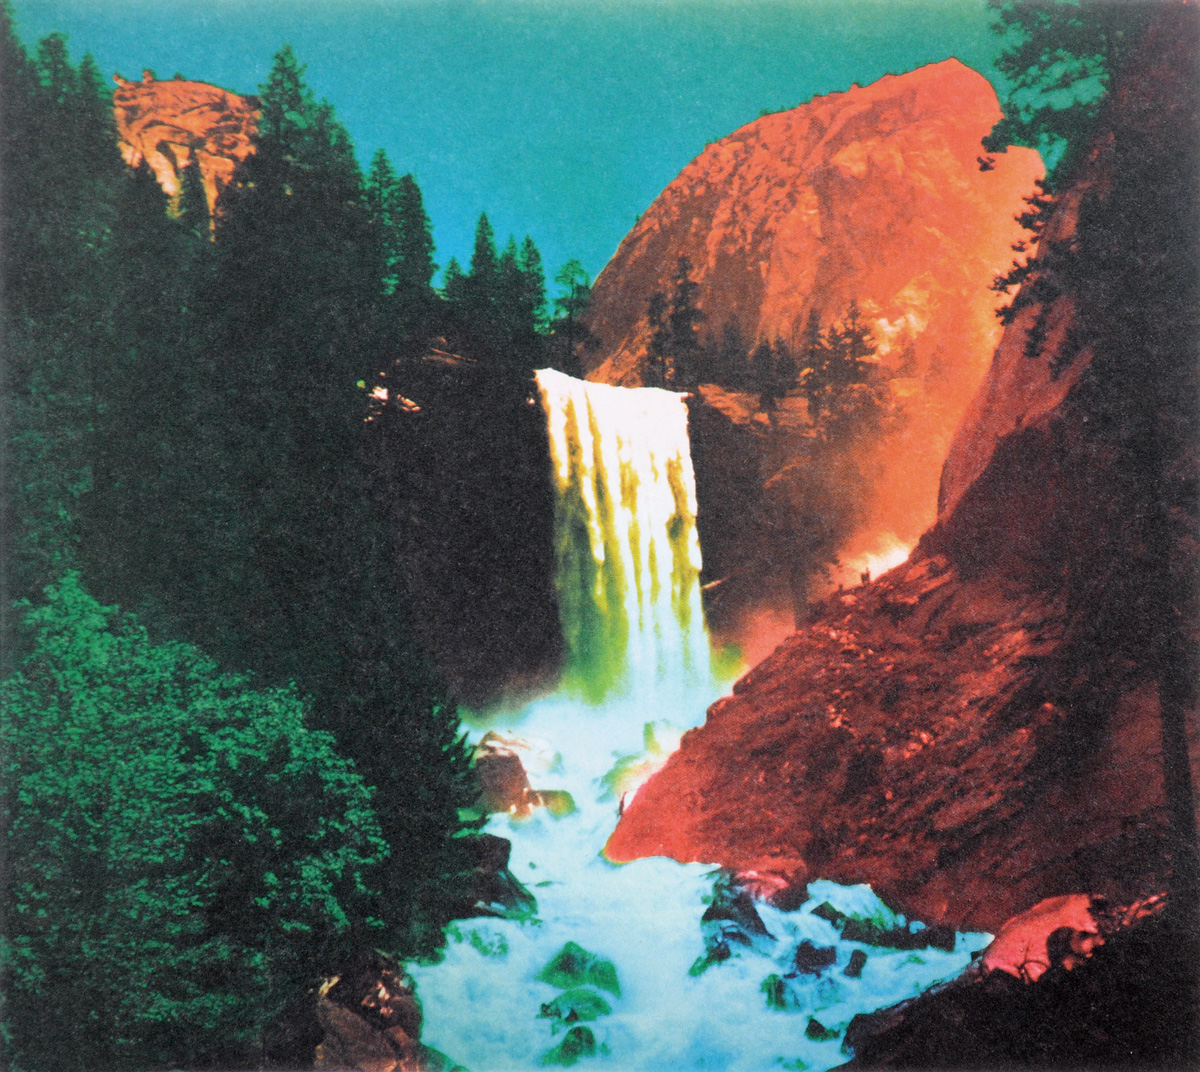 My Morning Jacket Jacket. The Waterfall